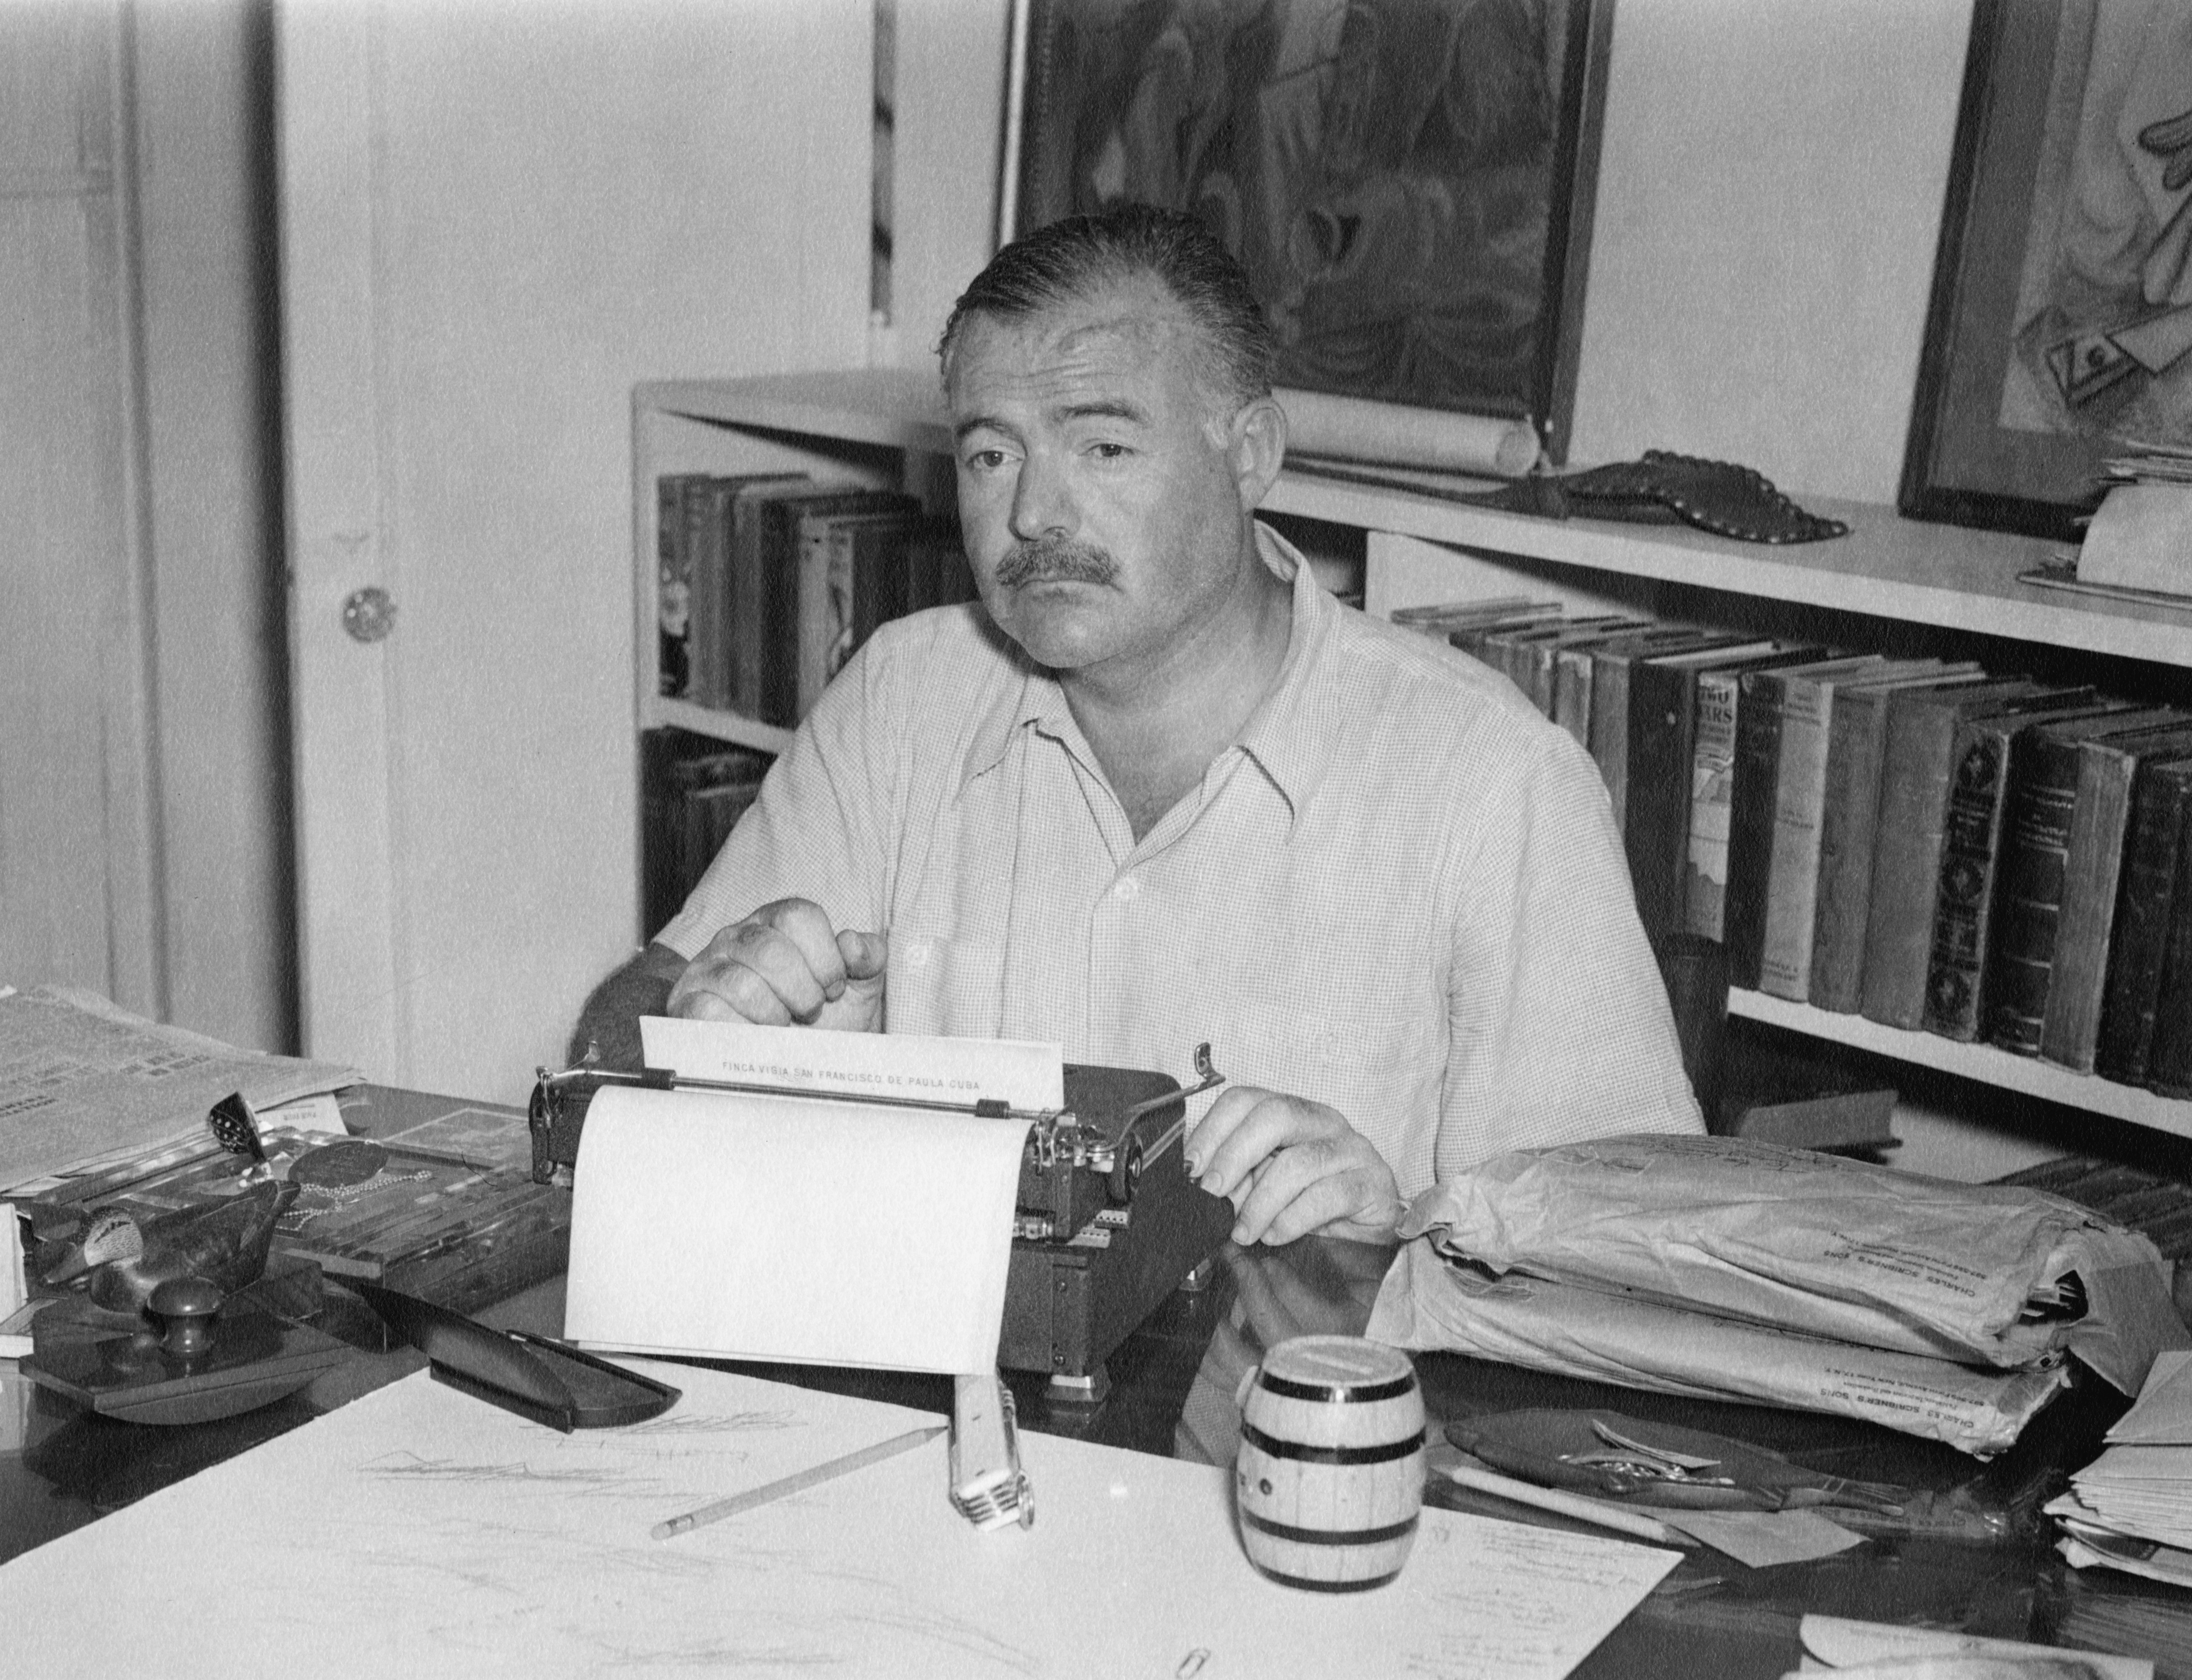 Hemingway Blinging Out Black Out Poetry Registration